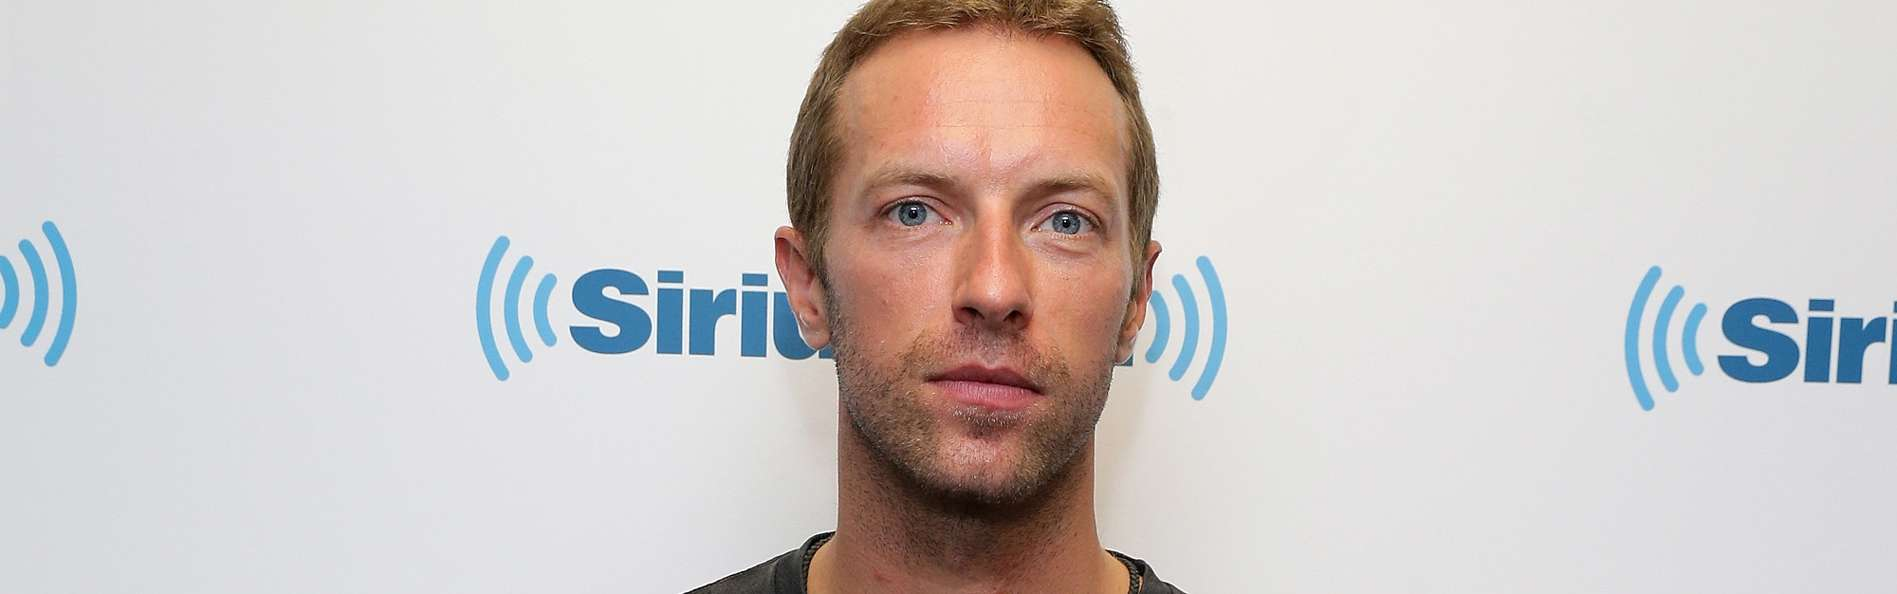 chris martin Foto: Getty Images